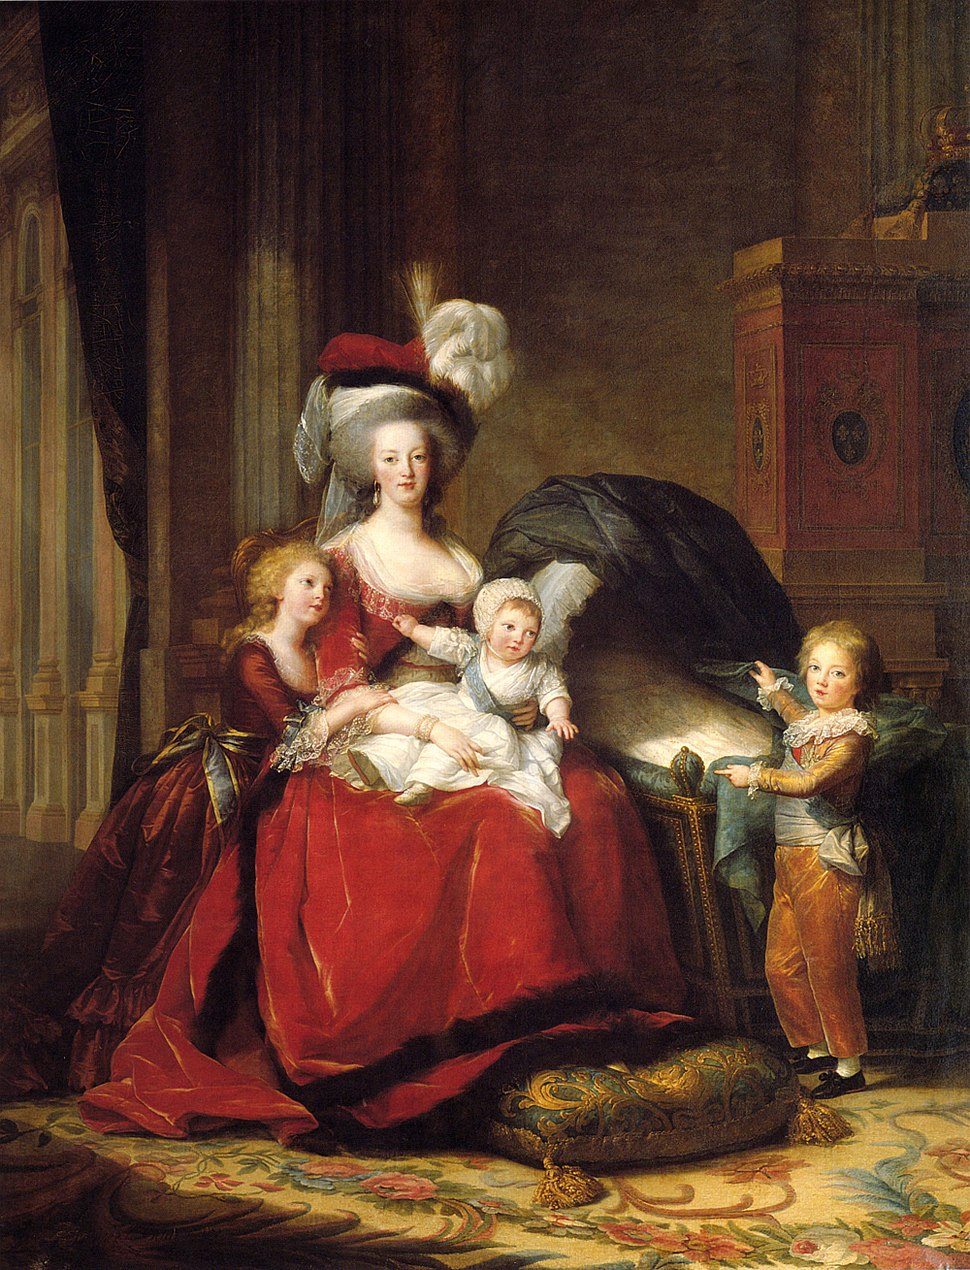 The Royal Family of France, 1787 Queen Marie Antoinette with her children, 1787 at Versailles; (L-R); Marie-Thérèse Charlotte, known as Madame Royale at court; the Queen with the Duke of Normandy on her lap; the Dauphin is on the right pointing into an empty cradle; the cradle used to show Madame Sophie; she died later in the year and had to be painted out; by Élisabeth-Louise Vigée-Le Brun; the Fleur-de-lis of France and the Bourbons can be seen behind on the cabinet